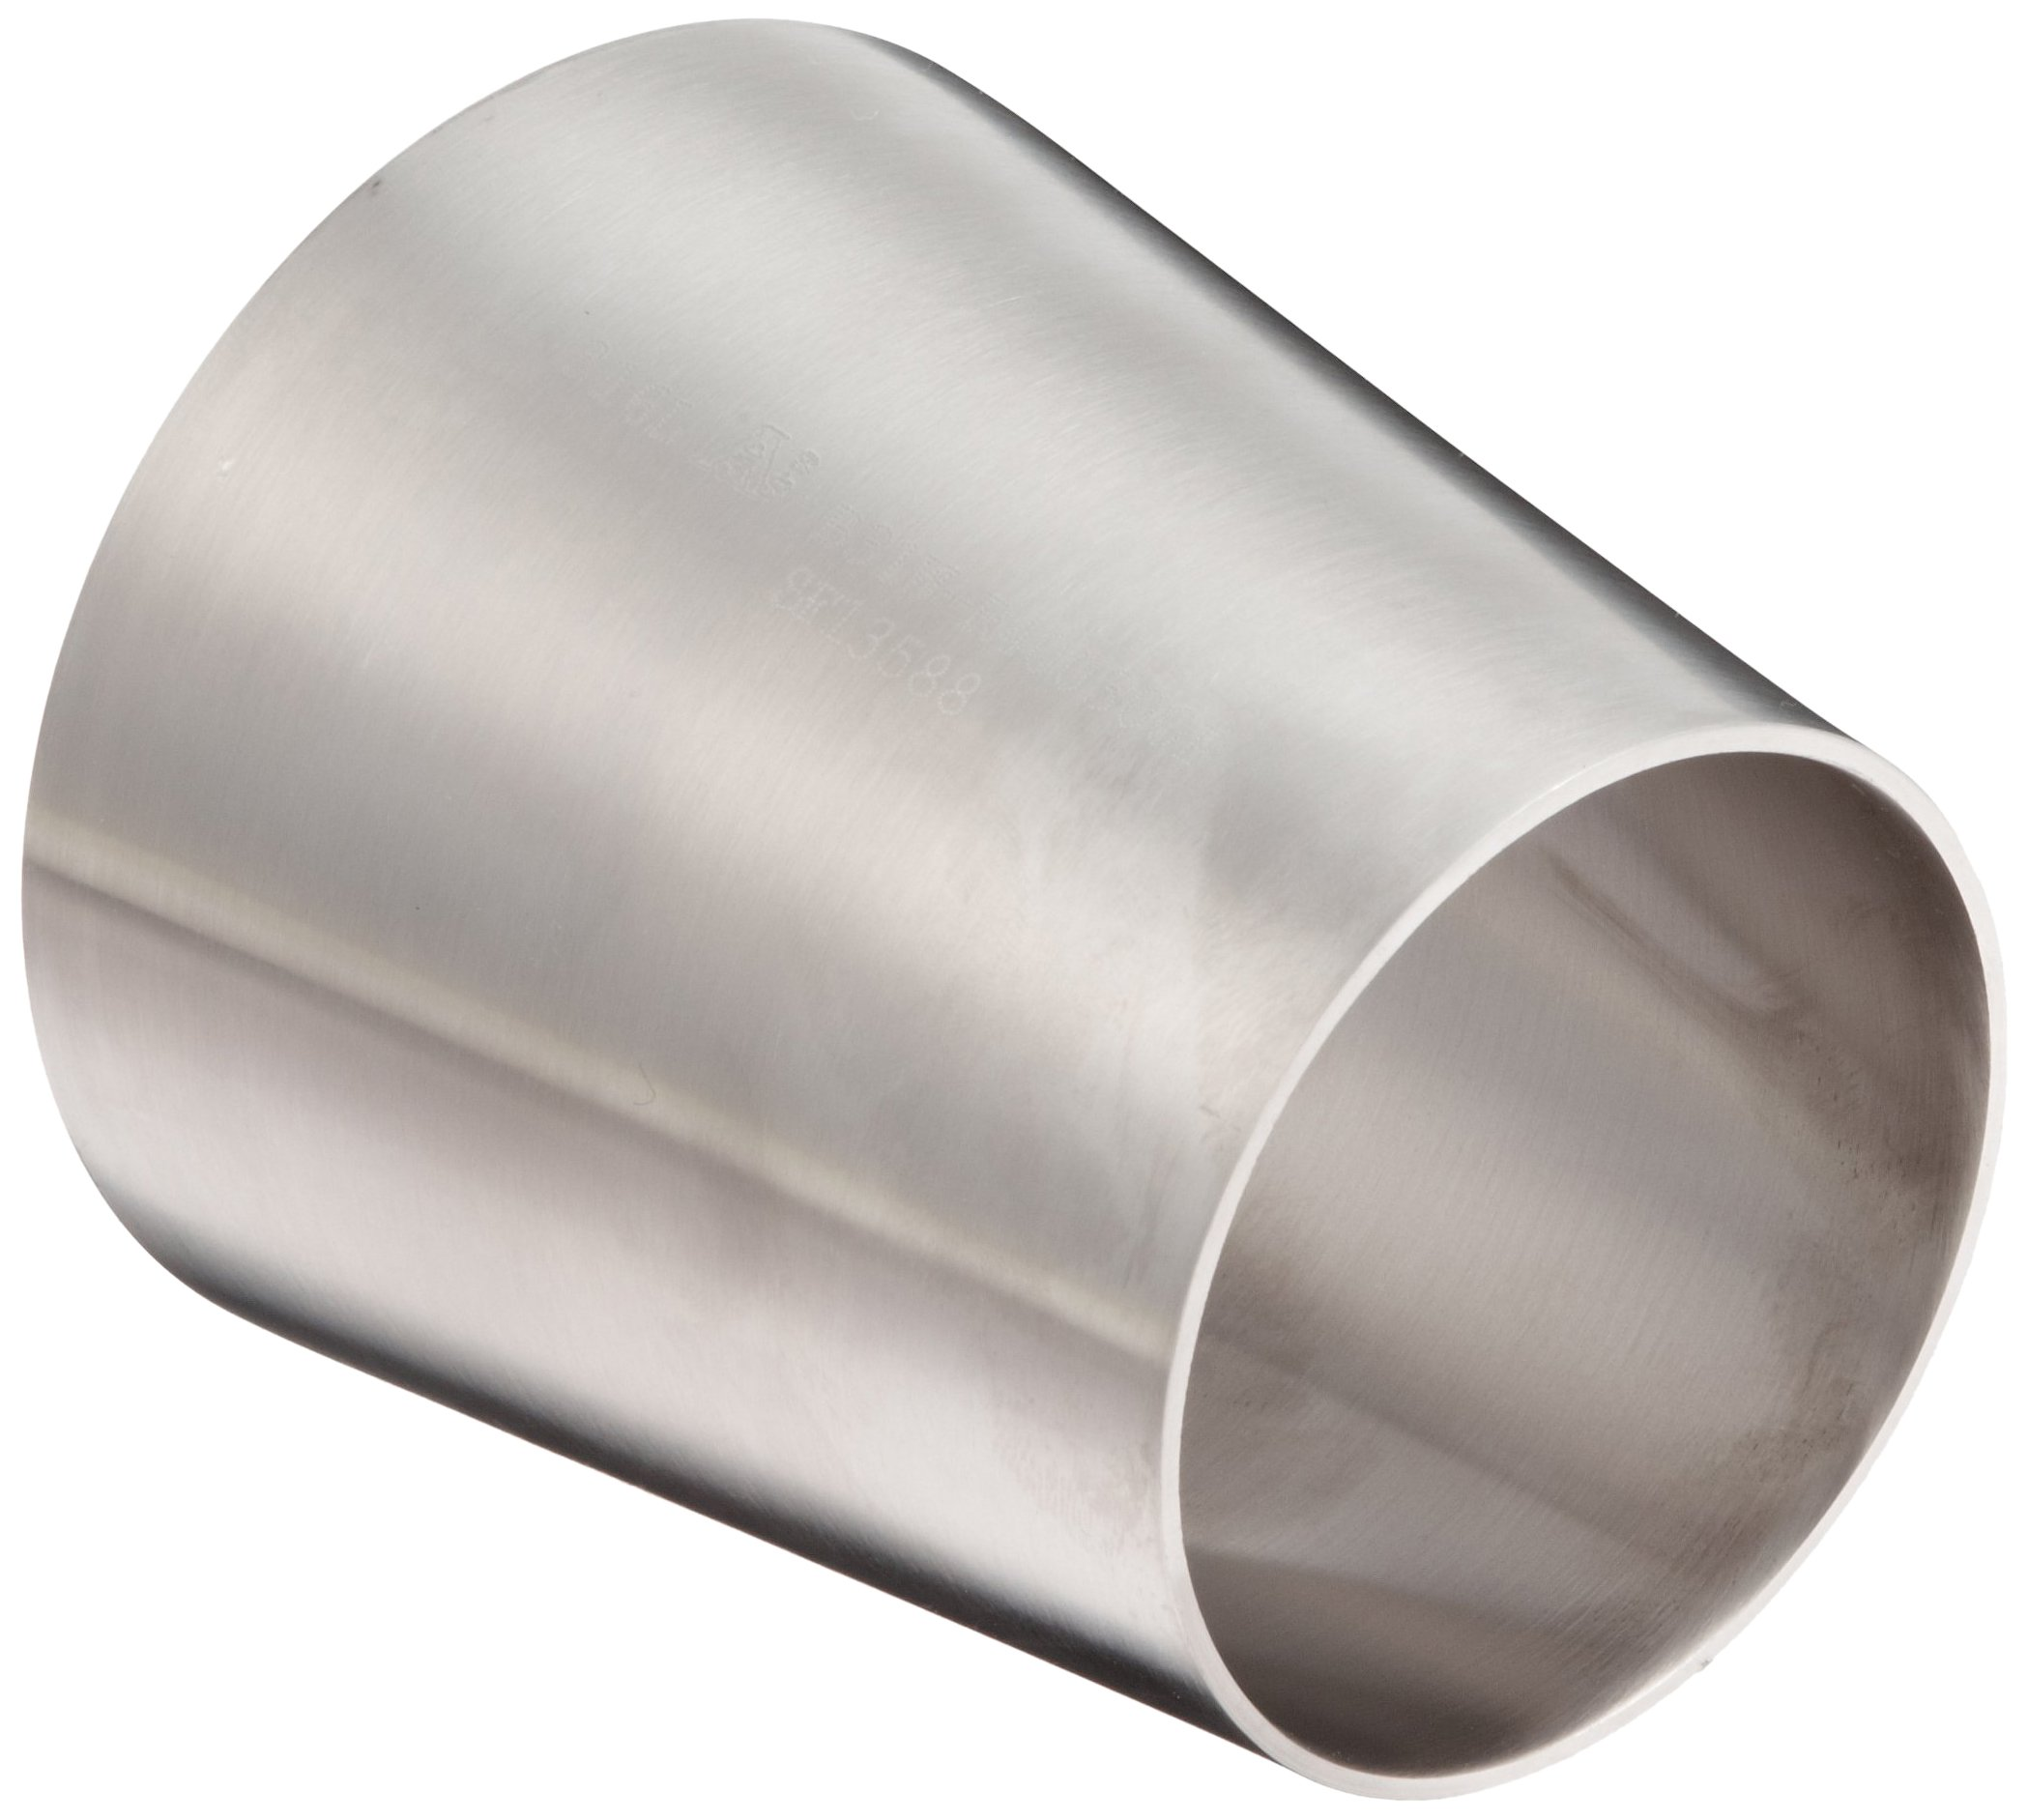 DixonB31W-G600400P Stainless Steel 304 Polished Fitting, Weld Concentric Reducer, 6'' Tube OD x 4'' Tube OD